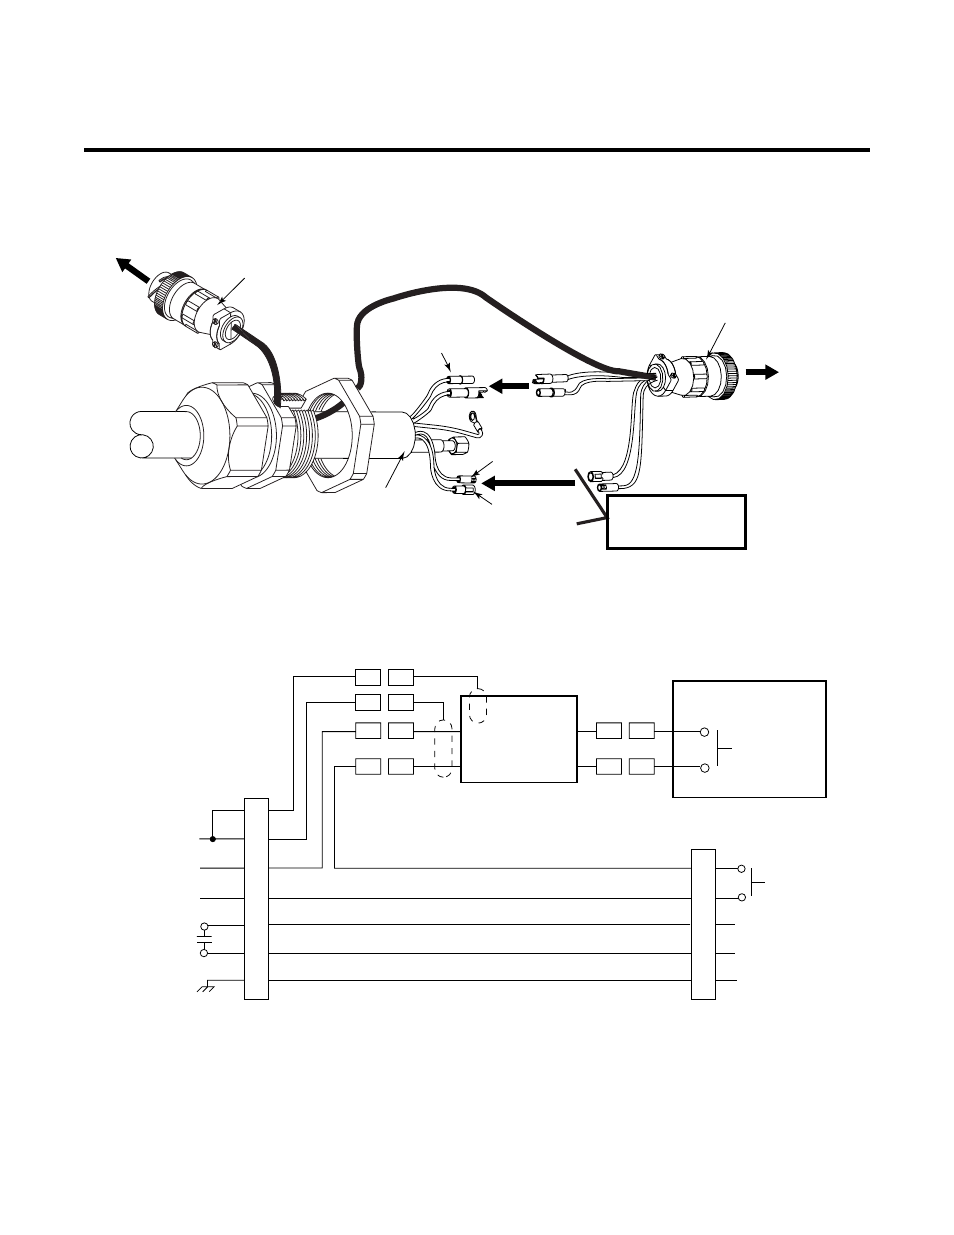 Appendix 2 Torch Control Cable Wiring Diagram Tweco Pcm 62 51 Machine User Manual Page 60